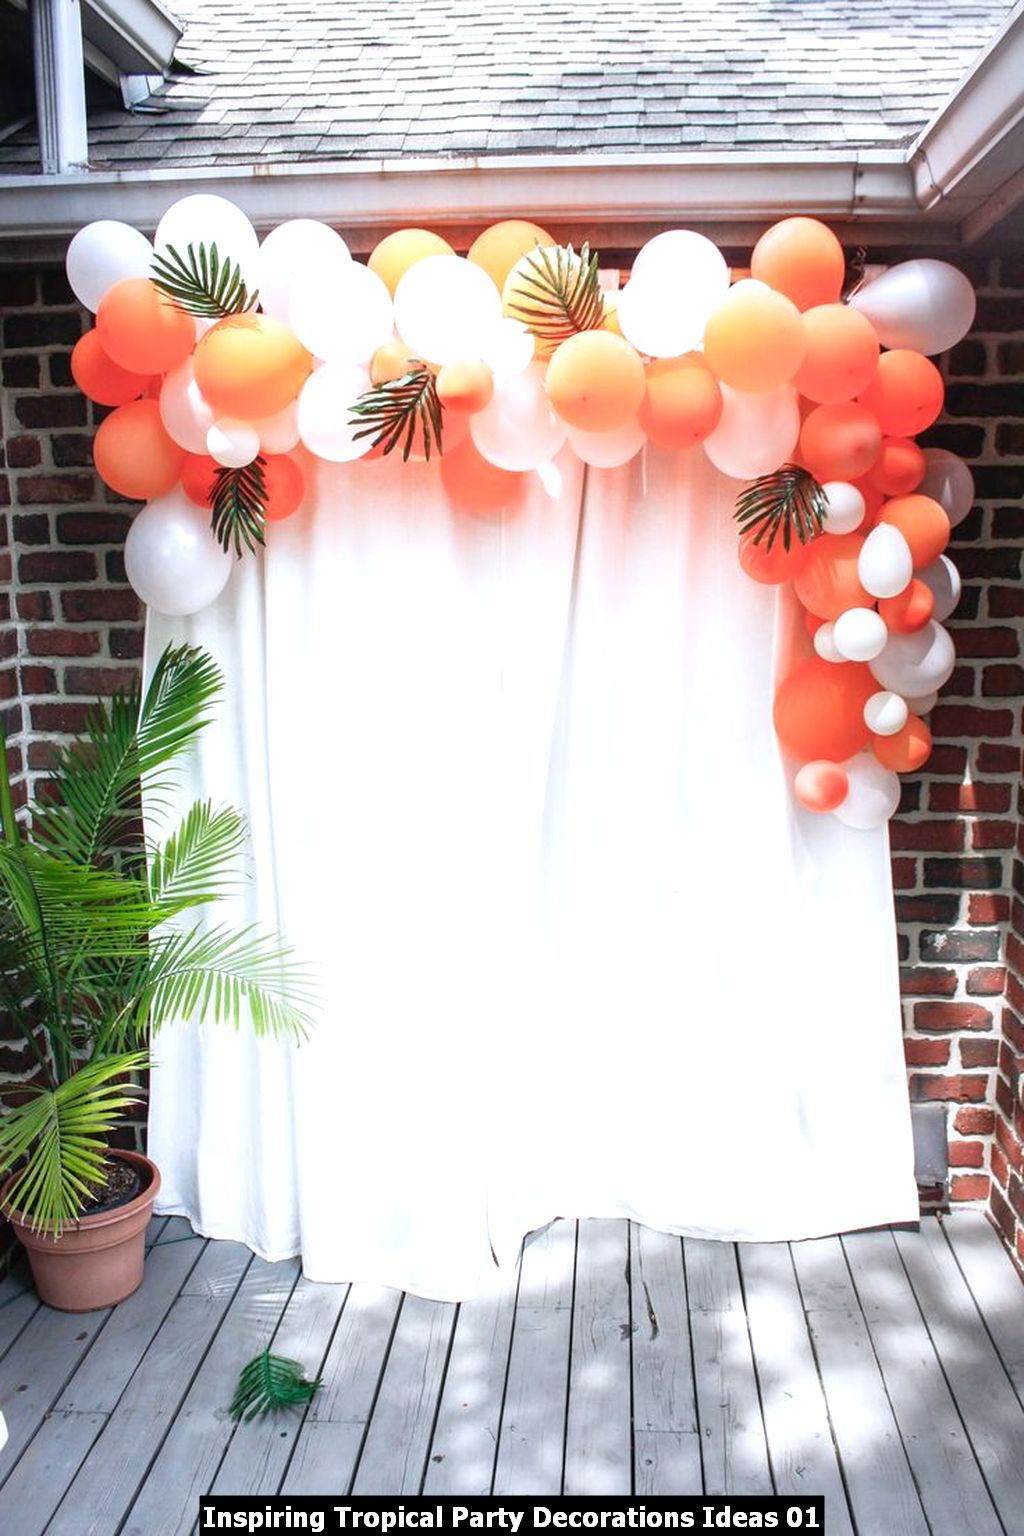 Inspiring Tropical Party Decorations Ideas 01